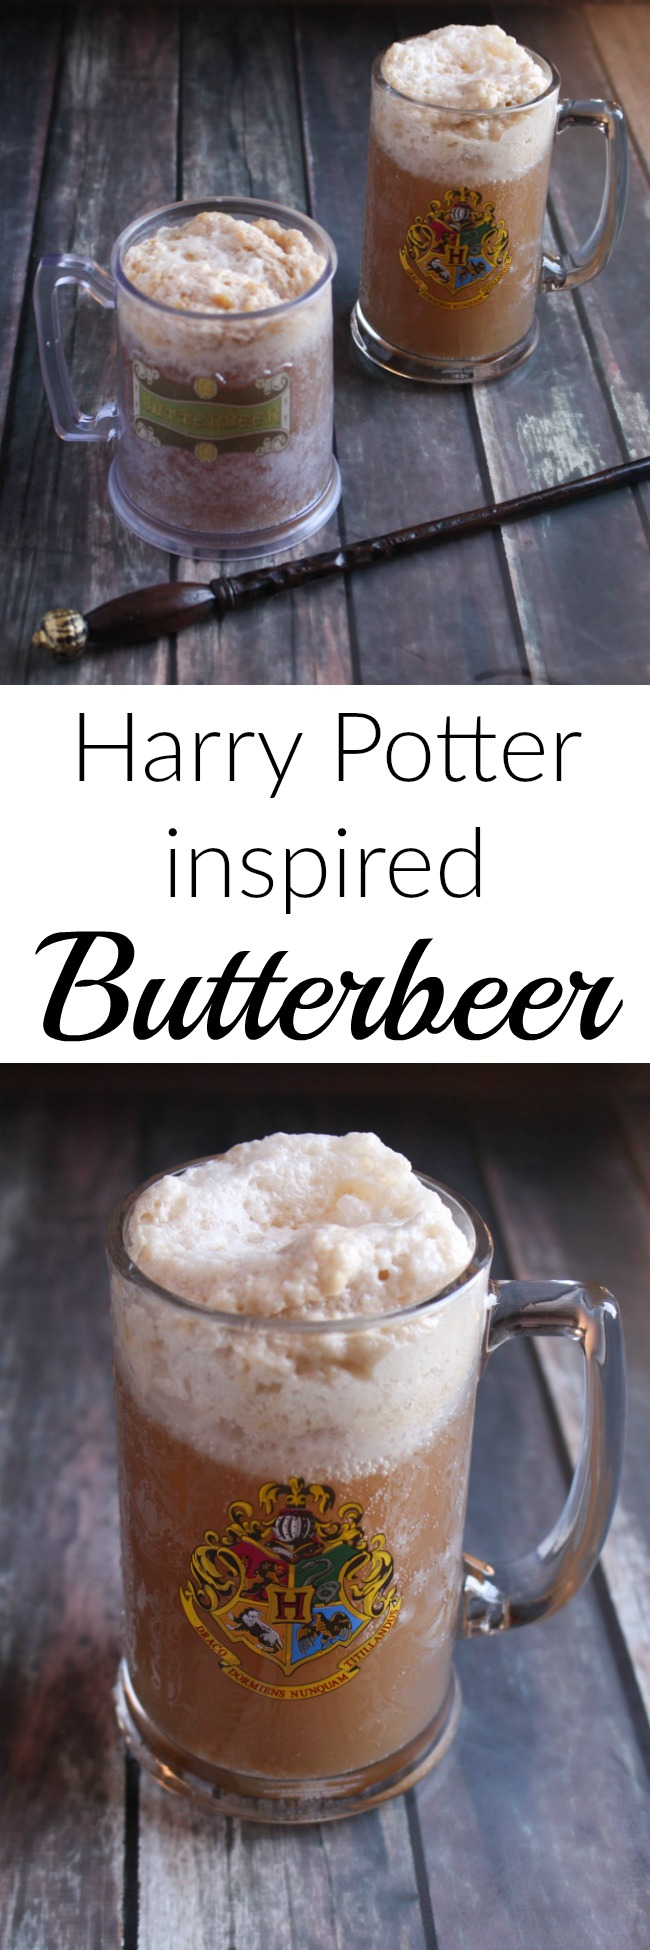 Inspired by the Harry Potter series, this recipe for butterbeer is a sweet, creamy, butterscotch treat. Whip up a batch, and cozy up with your favorite Harry Potter film or book. A great way to bring the series to life!